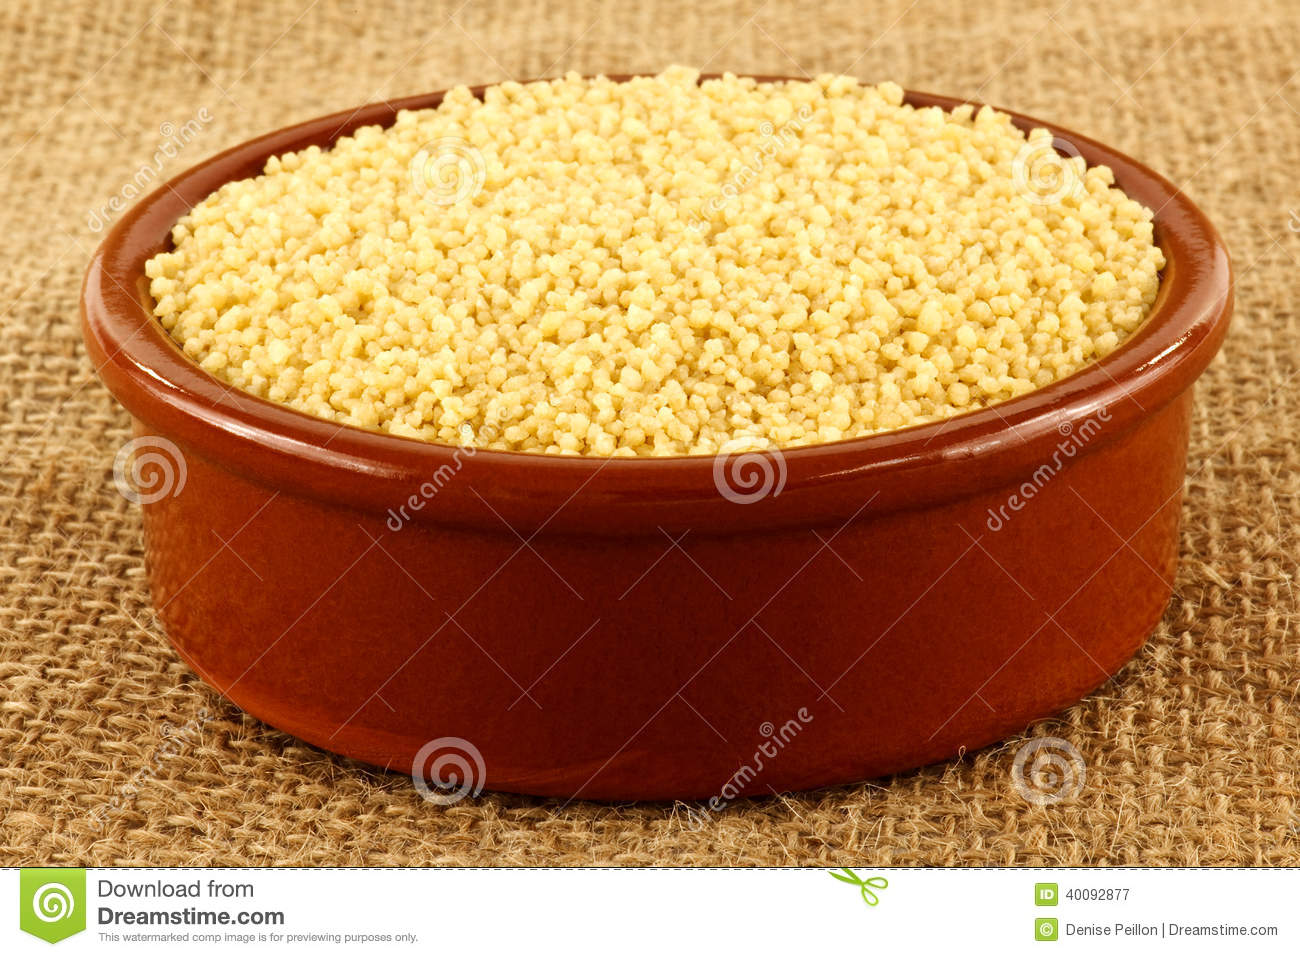 Uncooked Couscous Stock Photo - Image: 40092877